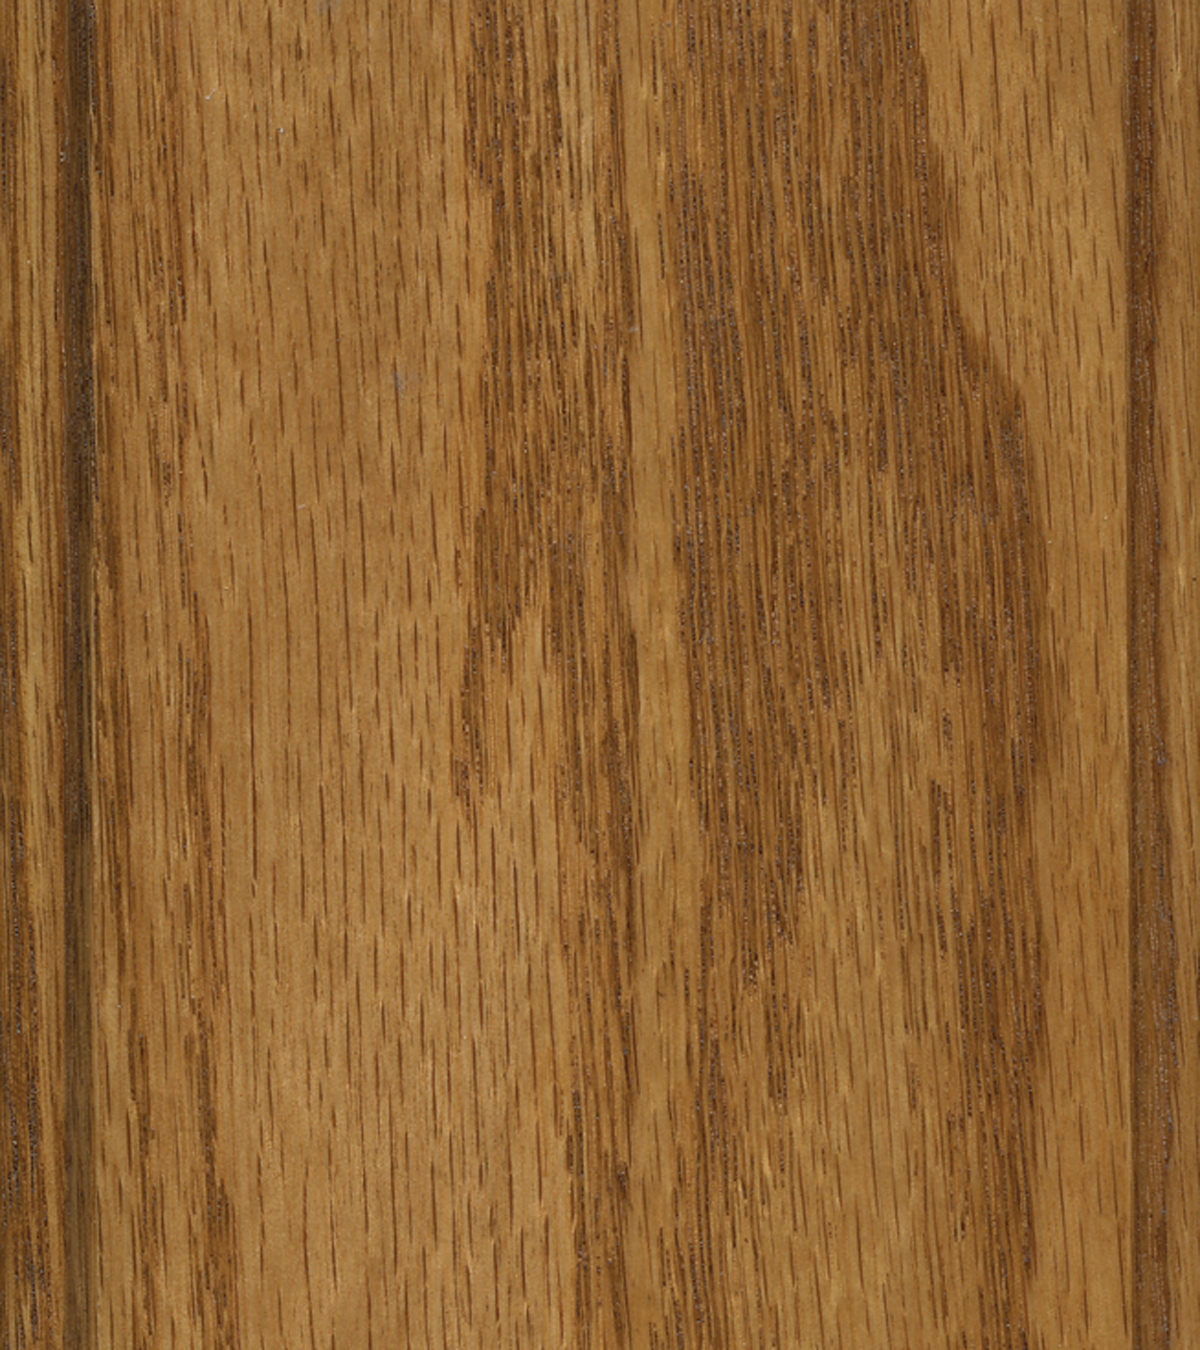 Red Oak: Golden Honey Oak